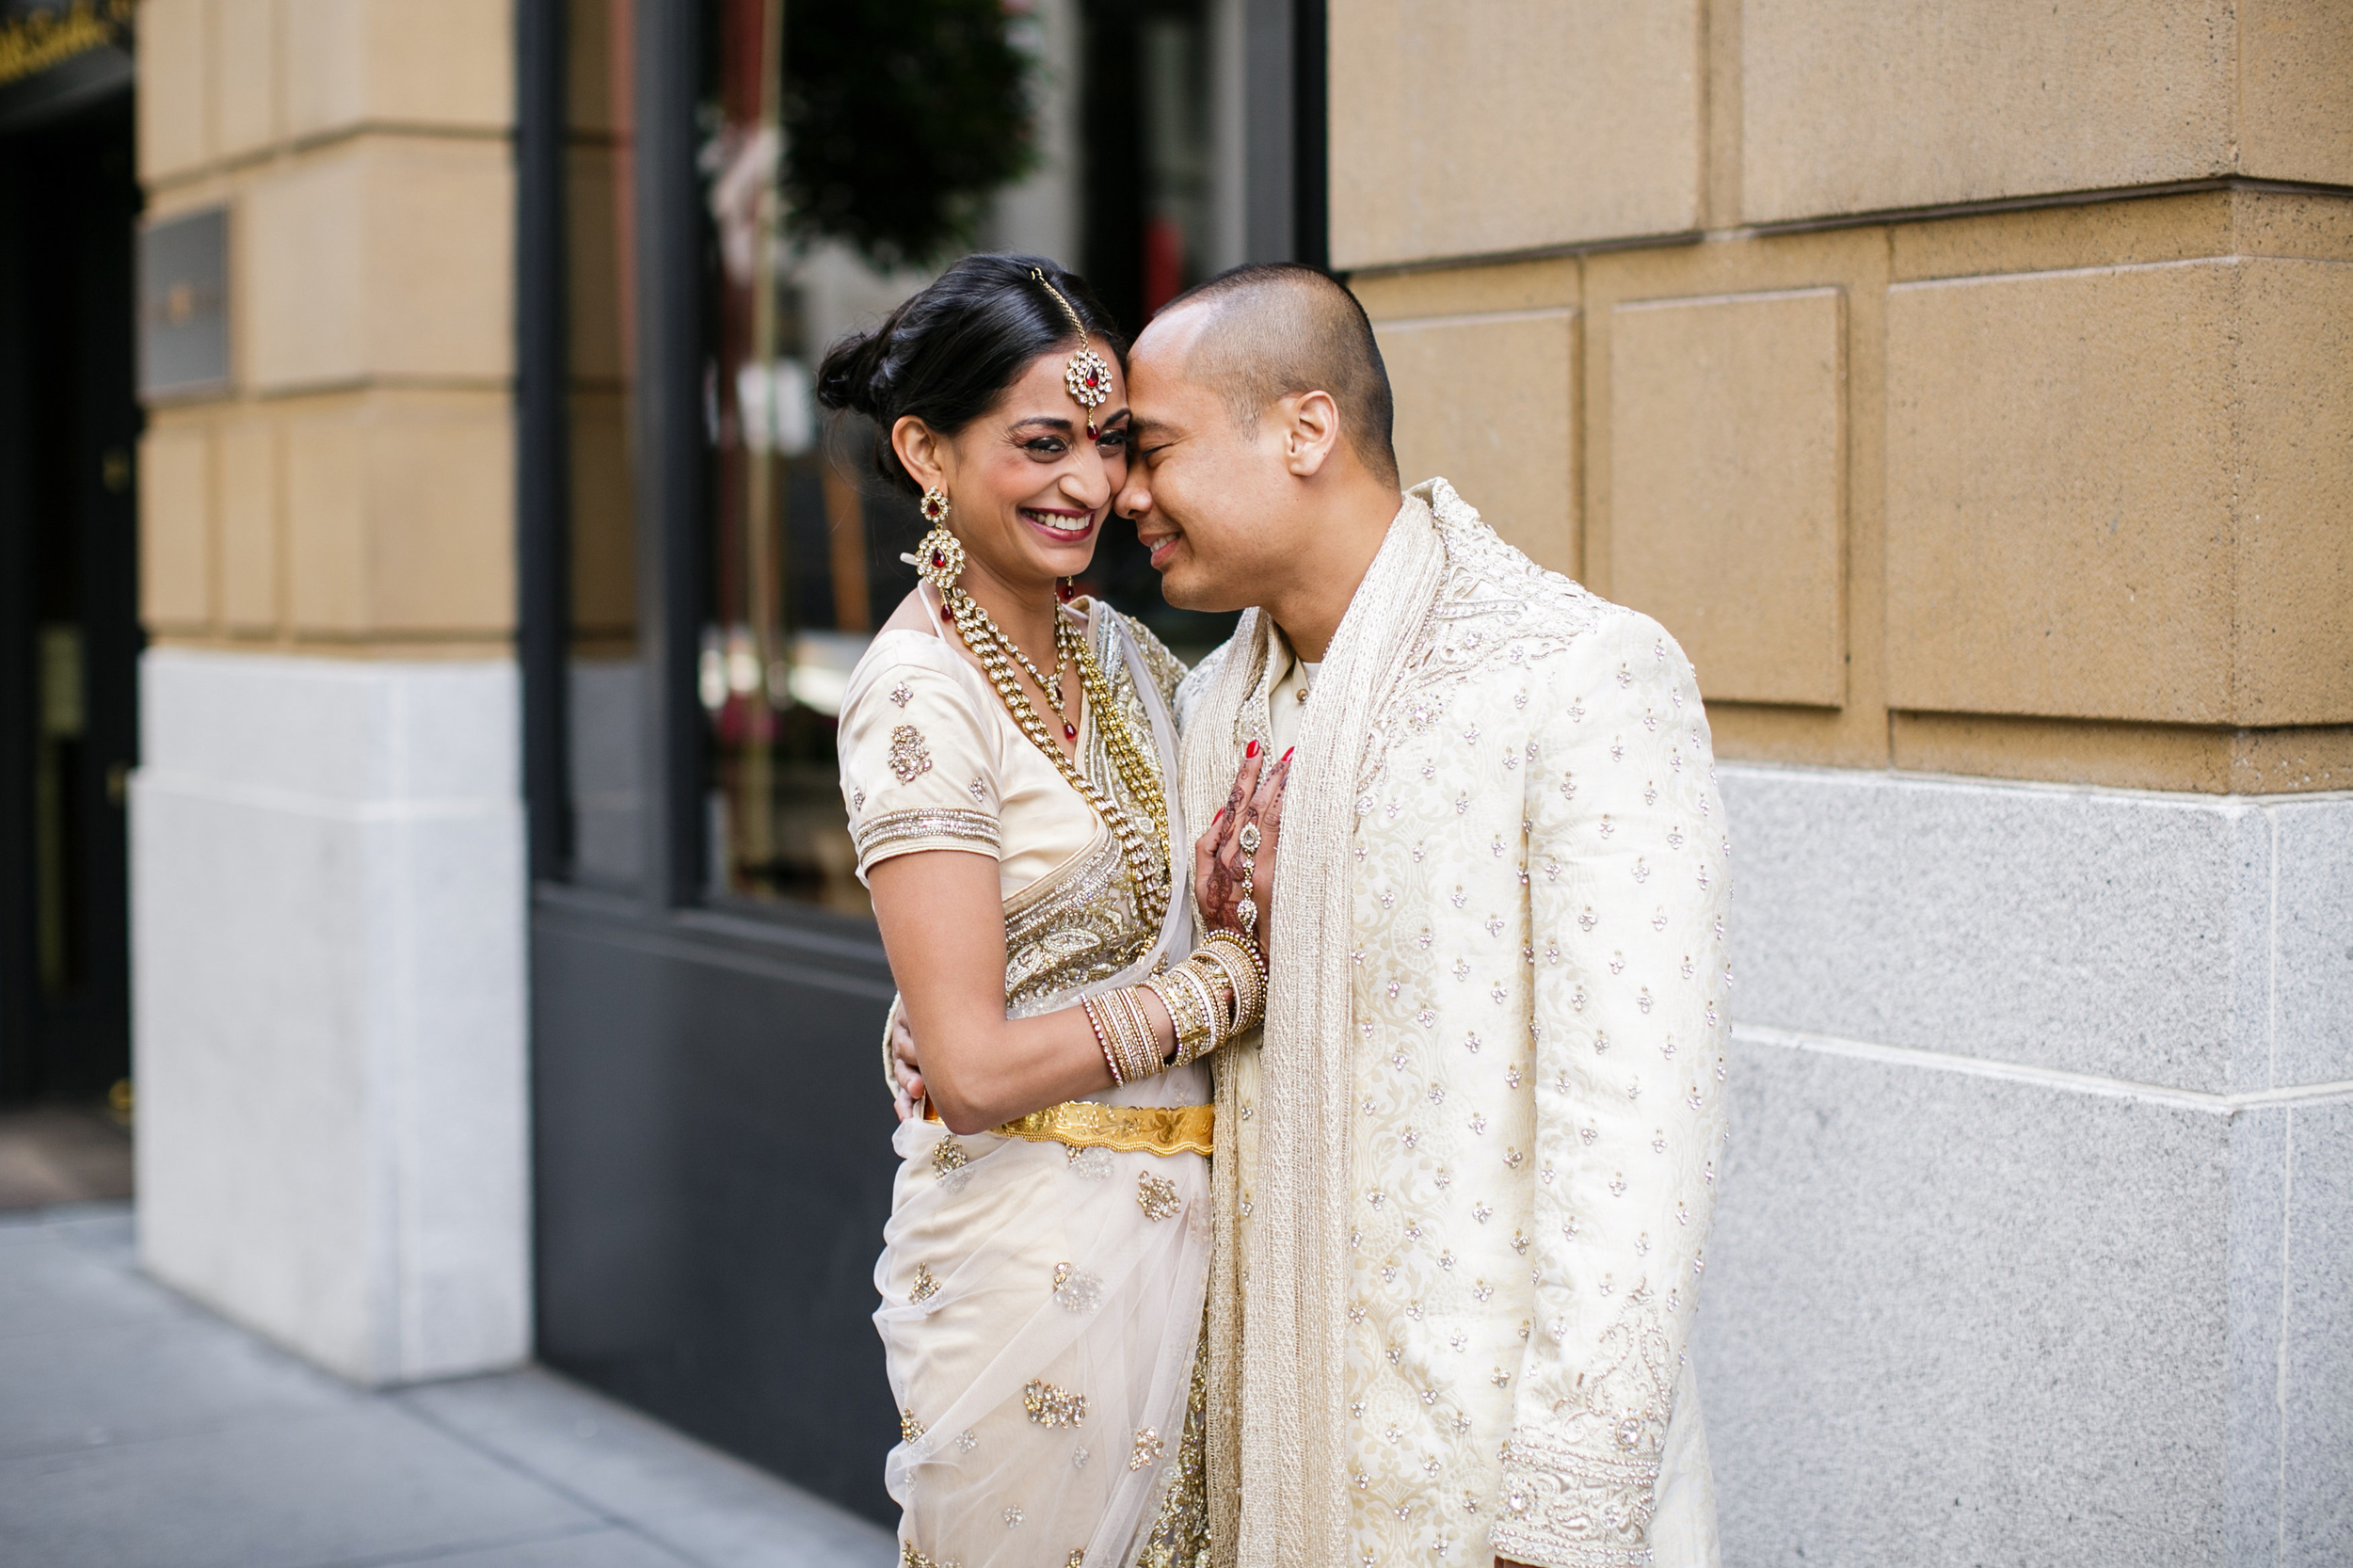 AnaisEvents_JihanCerdaPhotography_Priya-and-Jason - 021.jpg